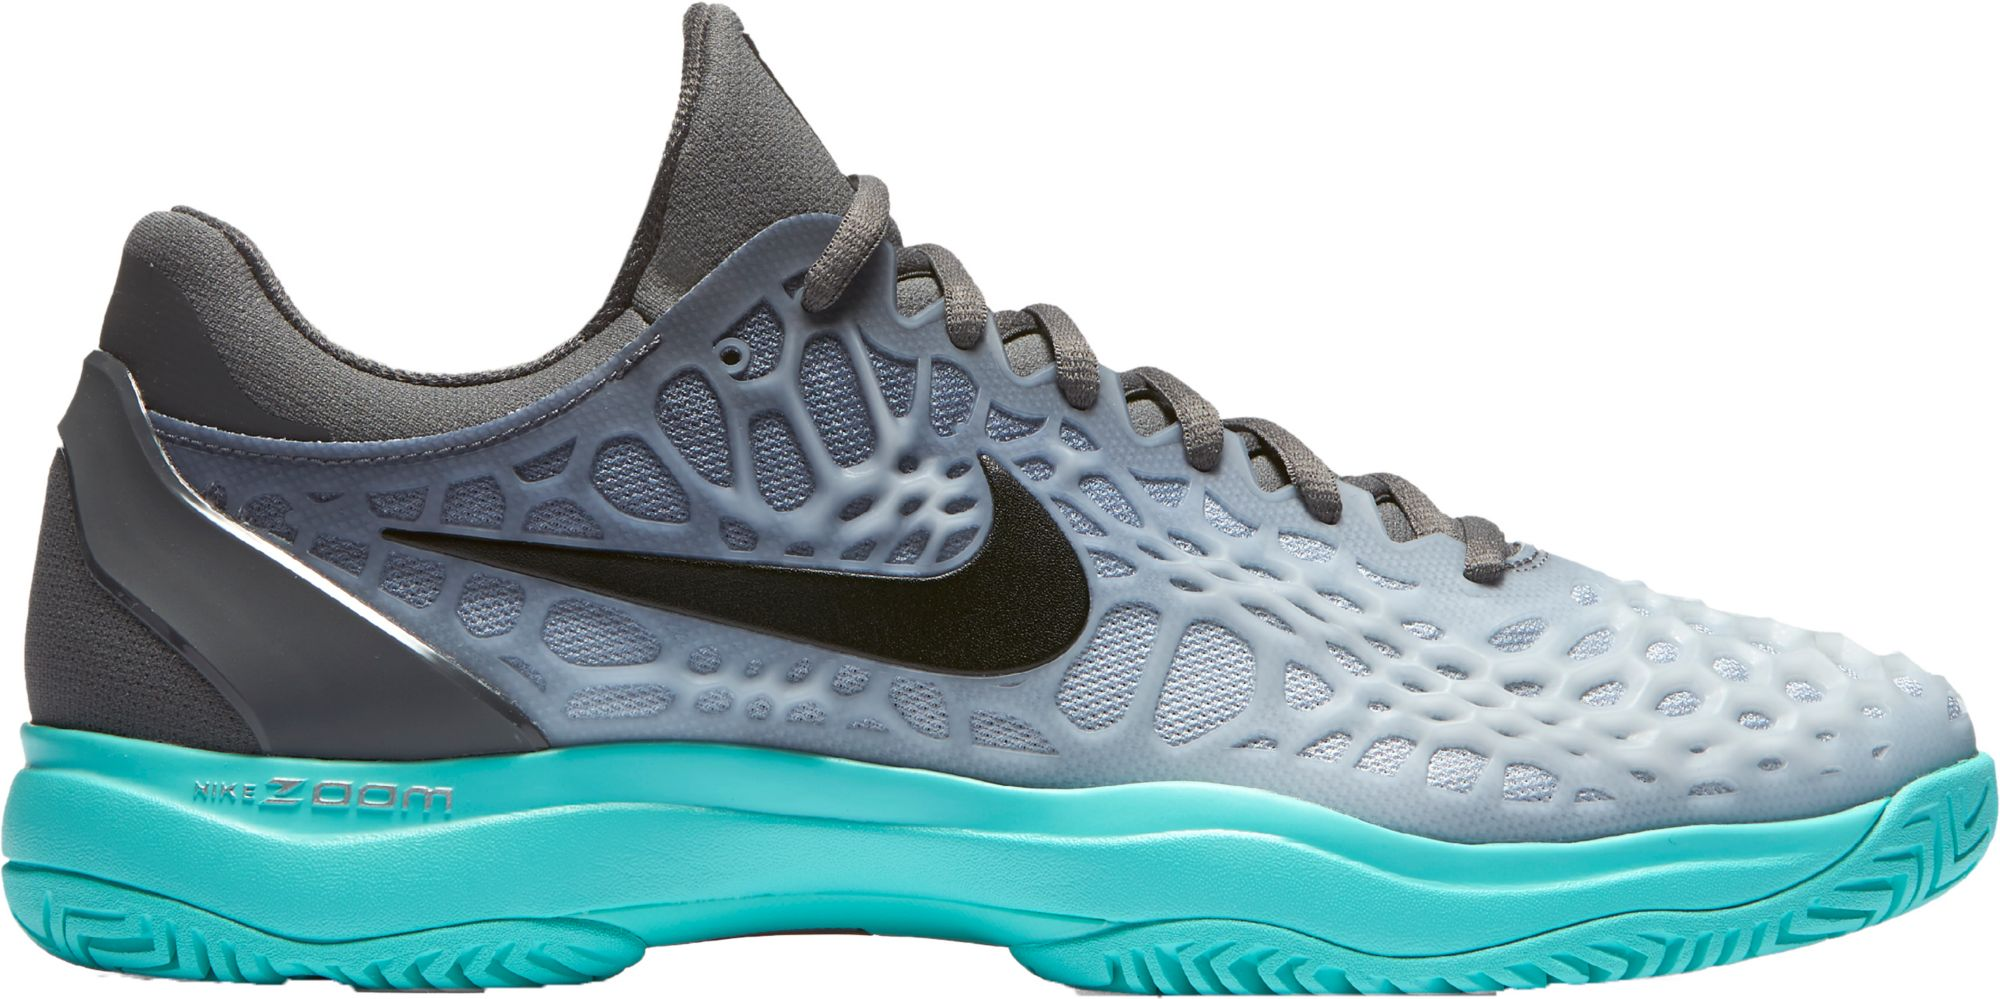 Nike Men\u0027s Zoom Cage 3 Tennis Shoes. 0:00. 0:00 / 0:00. noImageFound ???